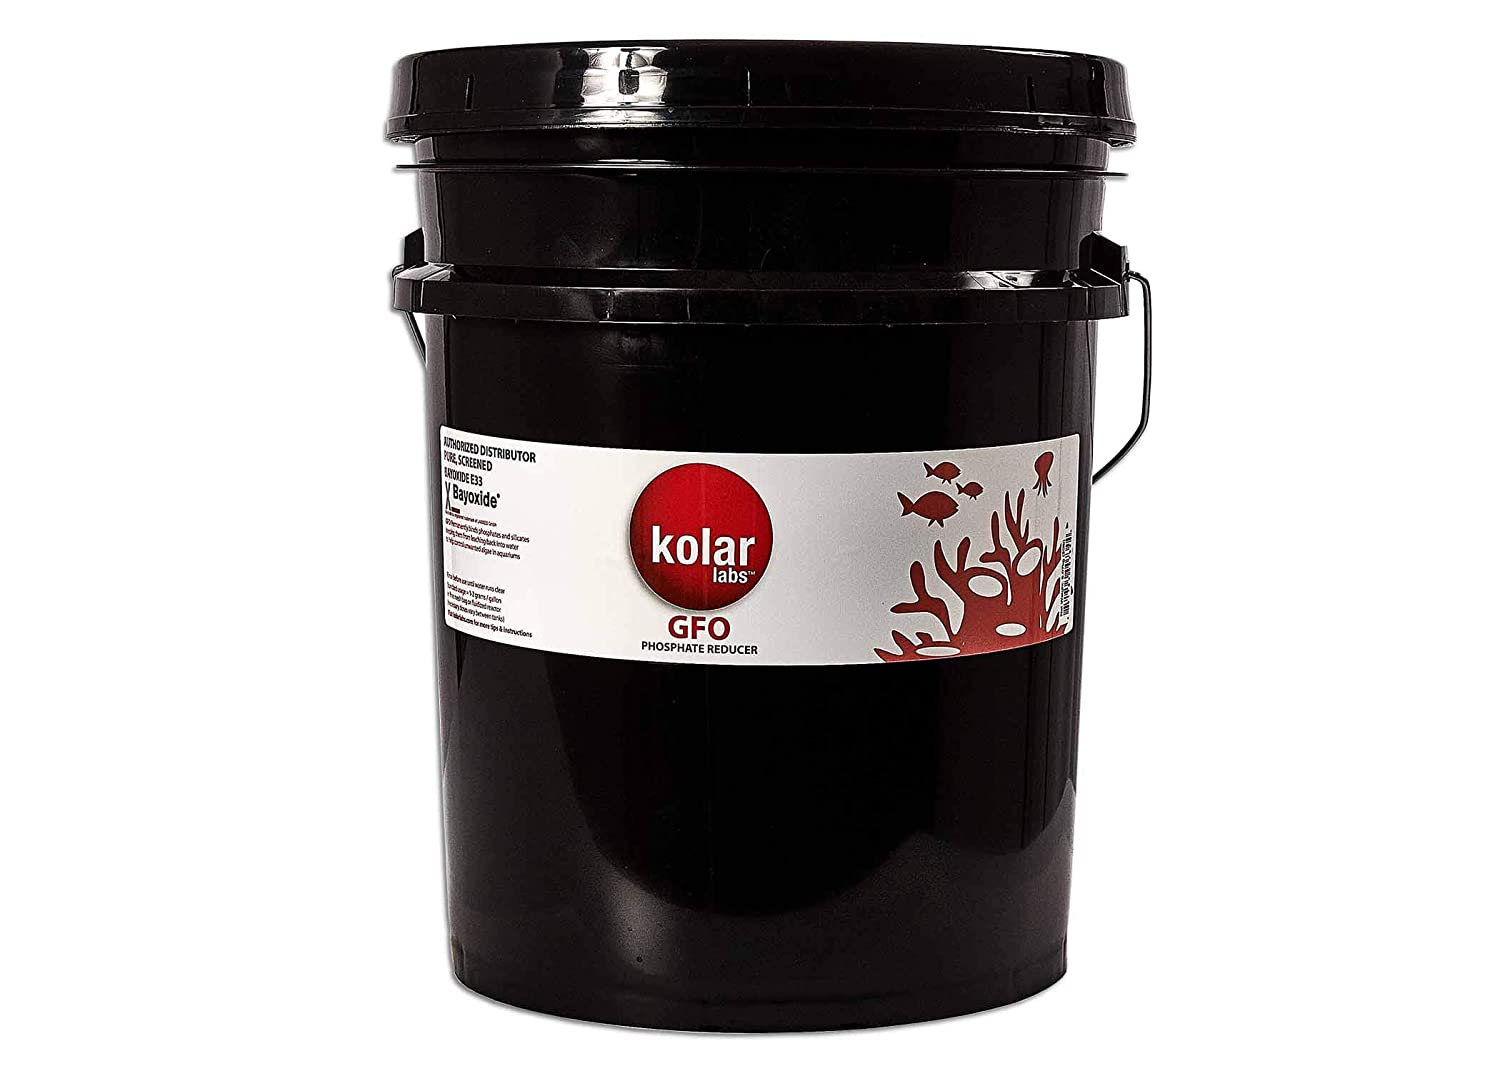 Kolar Filtration GFO 20 pounds of Bulk GFO Bayoxide E33 Phosphate & Arsenic Removal Media Aquarium Filter Algae Reducer